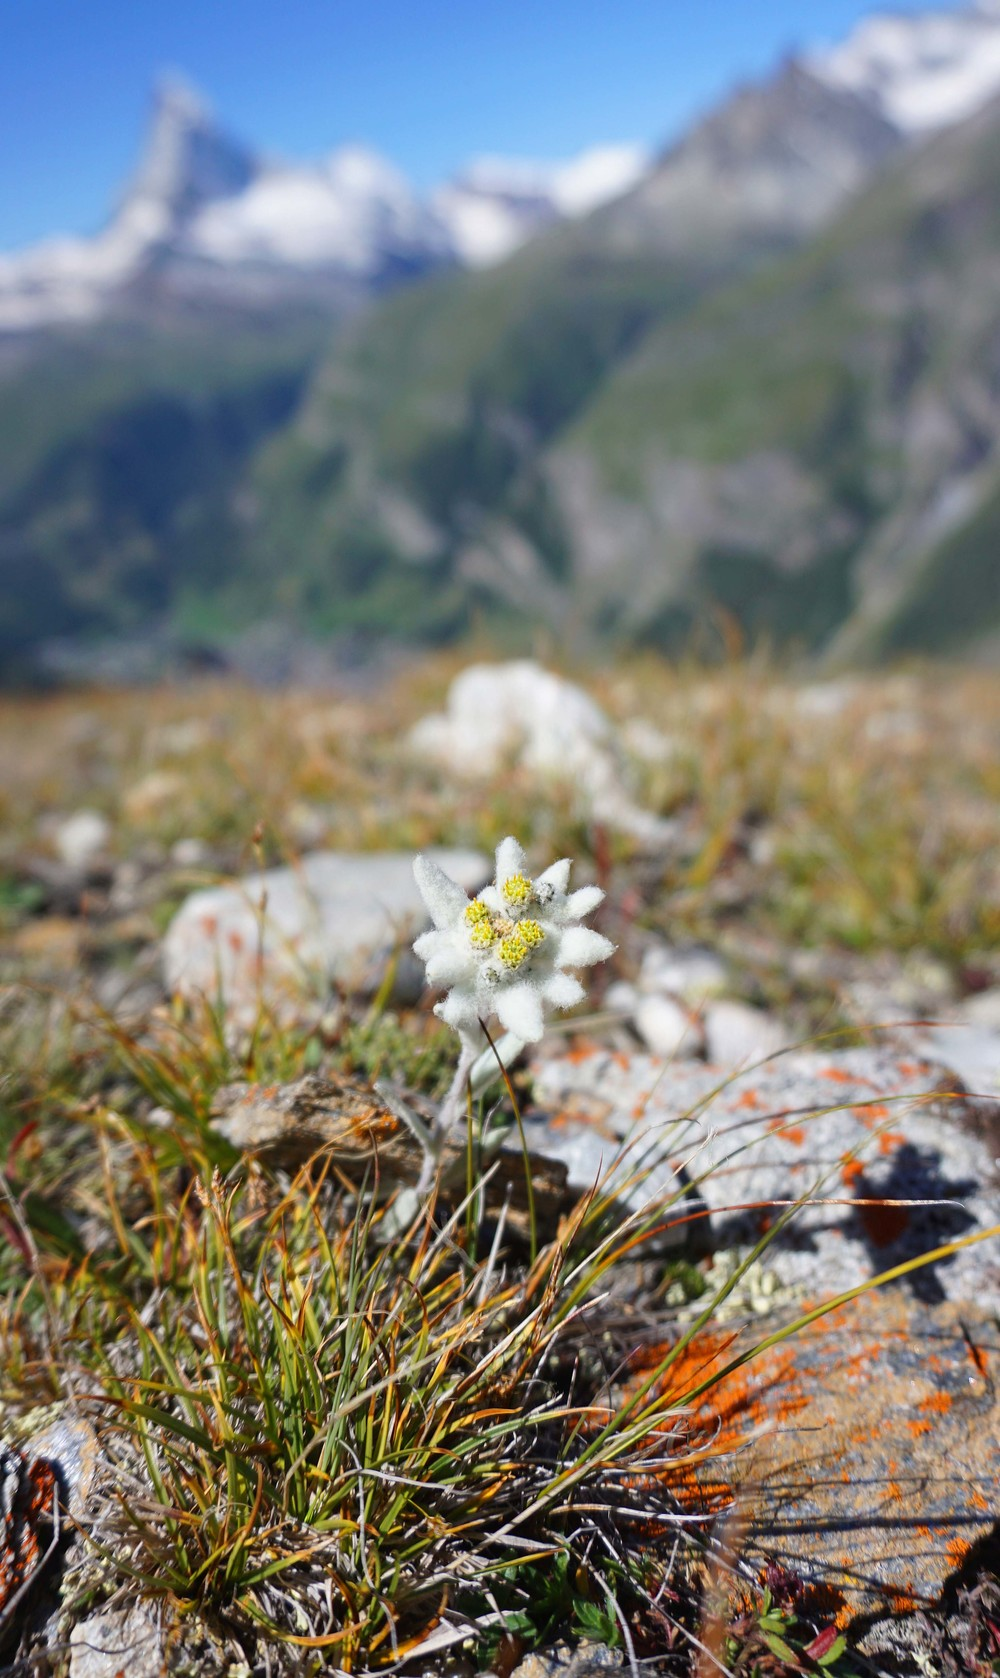 Edelweiss in the wild.